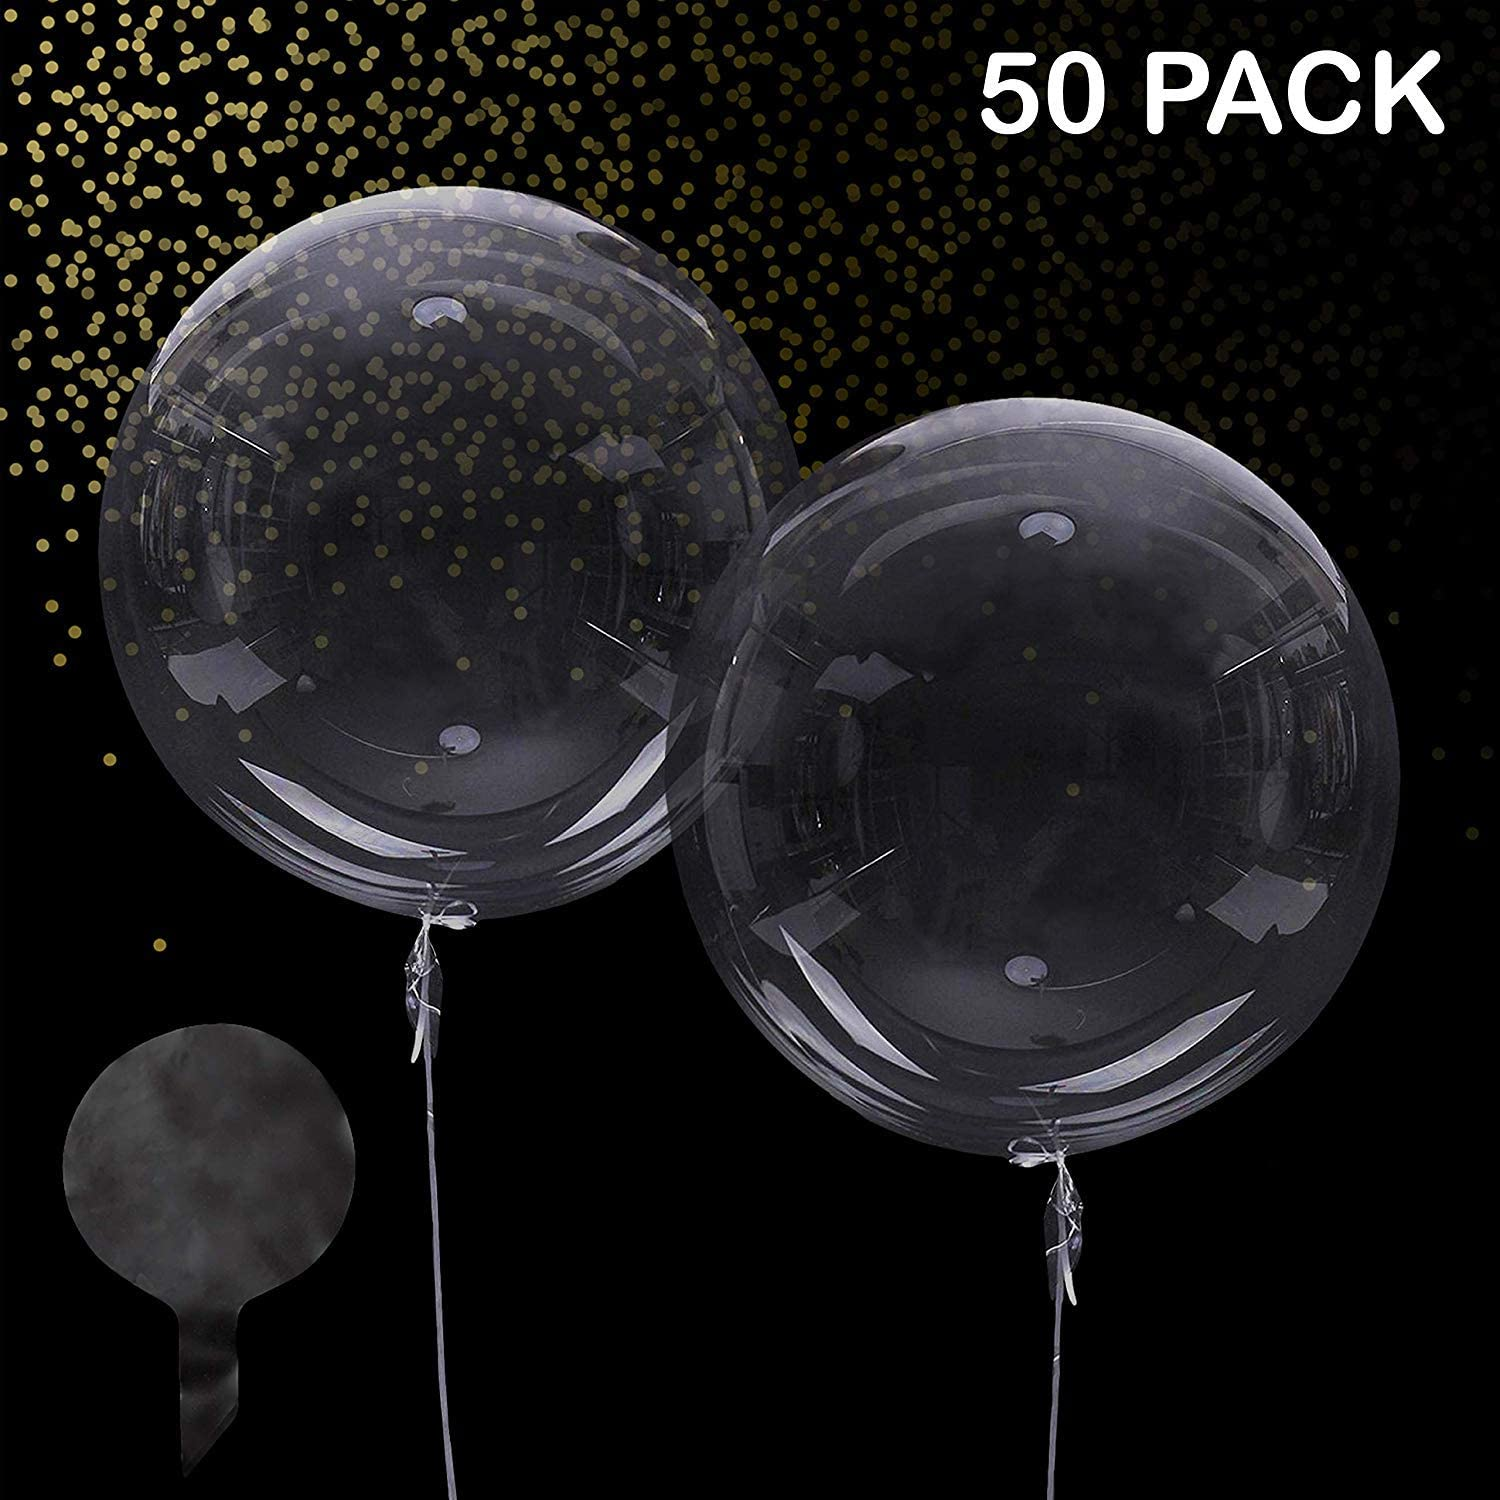 Zancybuzz 50 Pcs Clear Bobo Balloons 20 Inches Transparent Bubble Balloon for Light Up Led Balloons, House Decor, DIY, Christmas, Events, Wedding, Anniversary, Indoor and Outdoor Decoration, Family Reunion and Birthdays